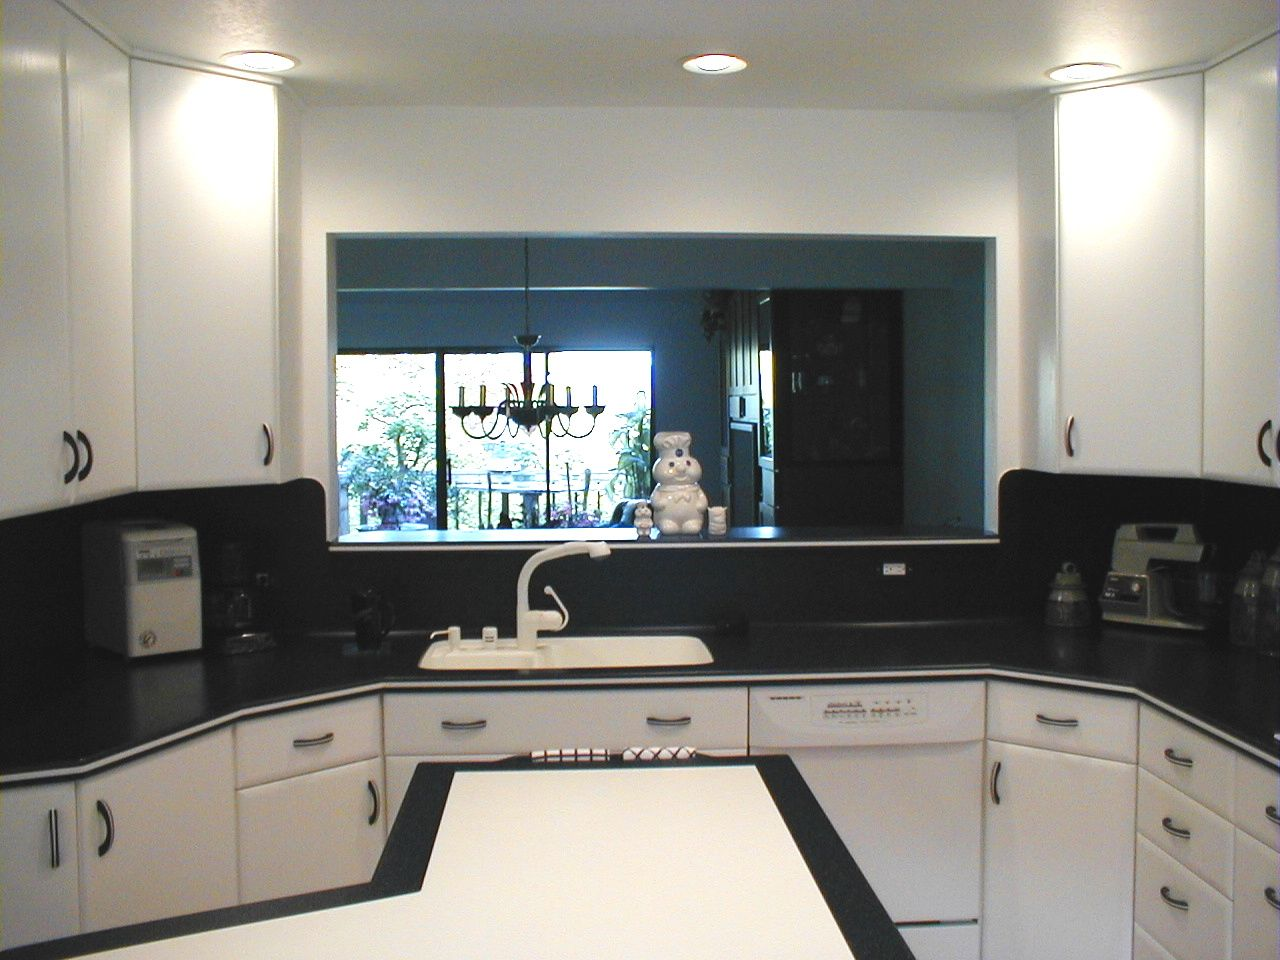 Maybe no cabinets above the stove and pass thru to keep it more open ...